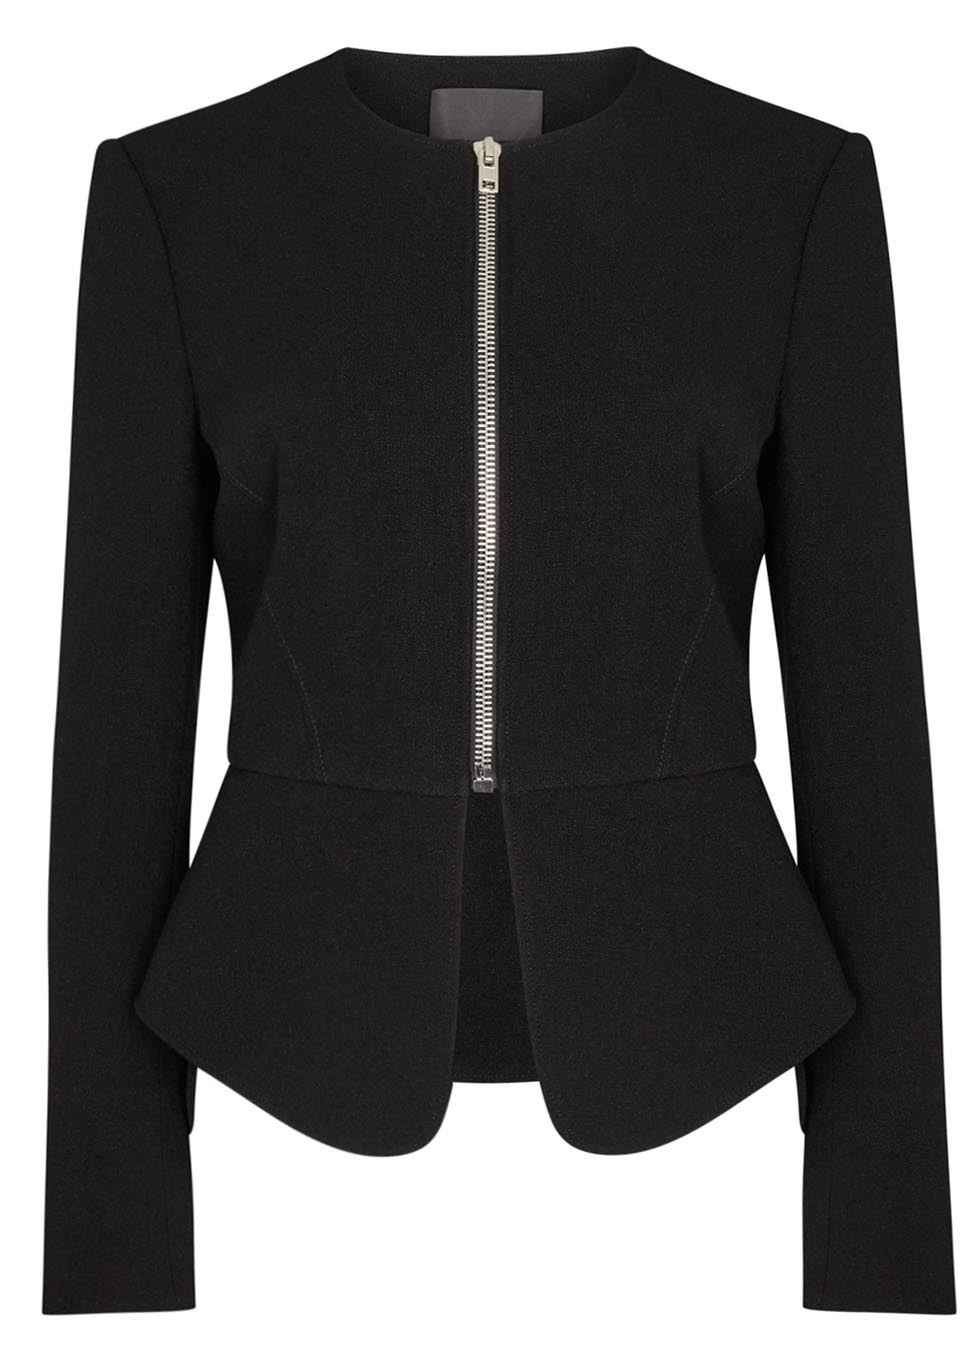 Black Peplum Jacket - pattern: plain; style: single breasted blazer; collar: round collar/collarless; predominant colour: black; occasions: evening; length: standard; fit: tailored/fitted; fibres: polyester/polyamide - 100%; sleeve length: long sleeve; sleeve style: standard; collar break: high; pattern type: fabric; texture group: woven light midweight; season: s/s 2016